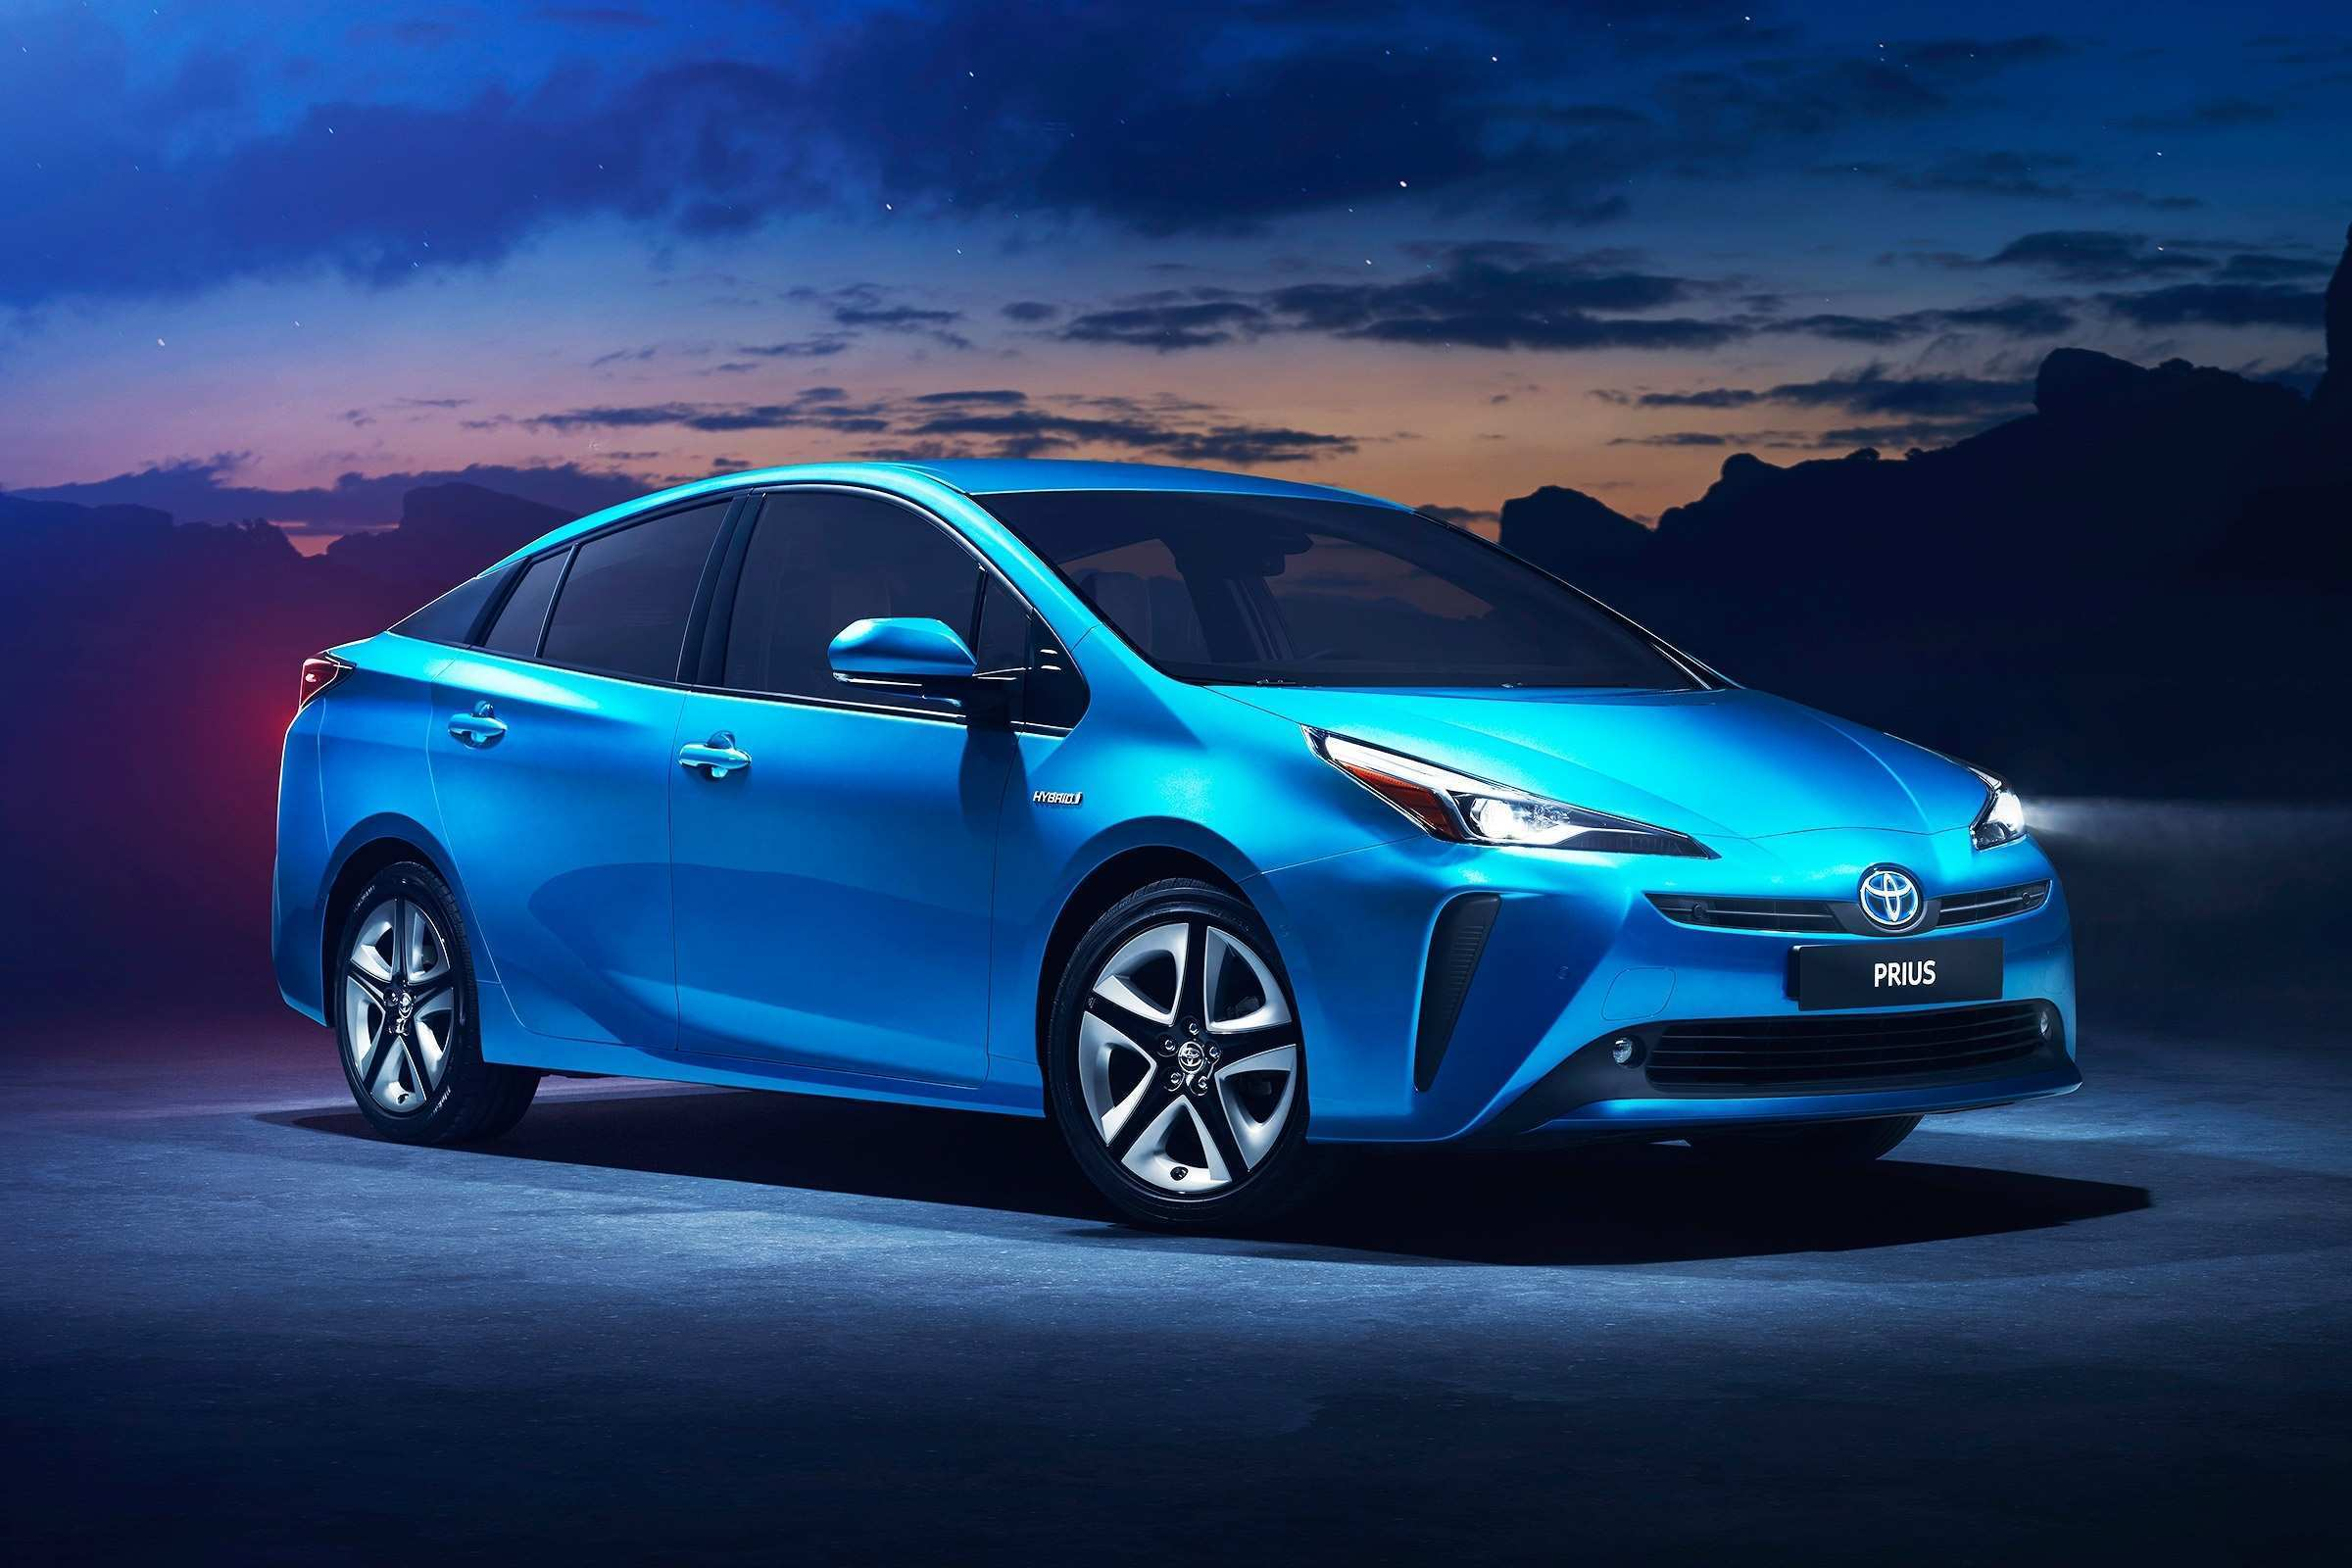 98 A 2019 Spy Shots Toyota Prius Reviews